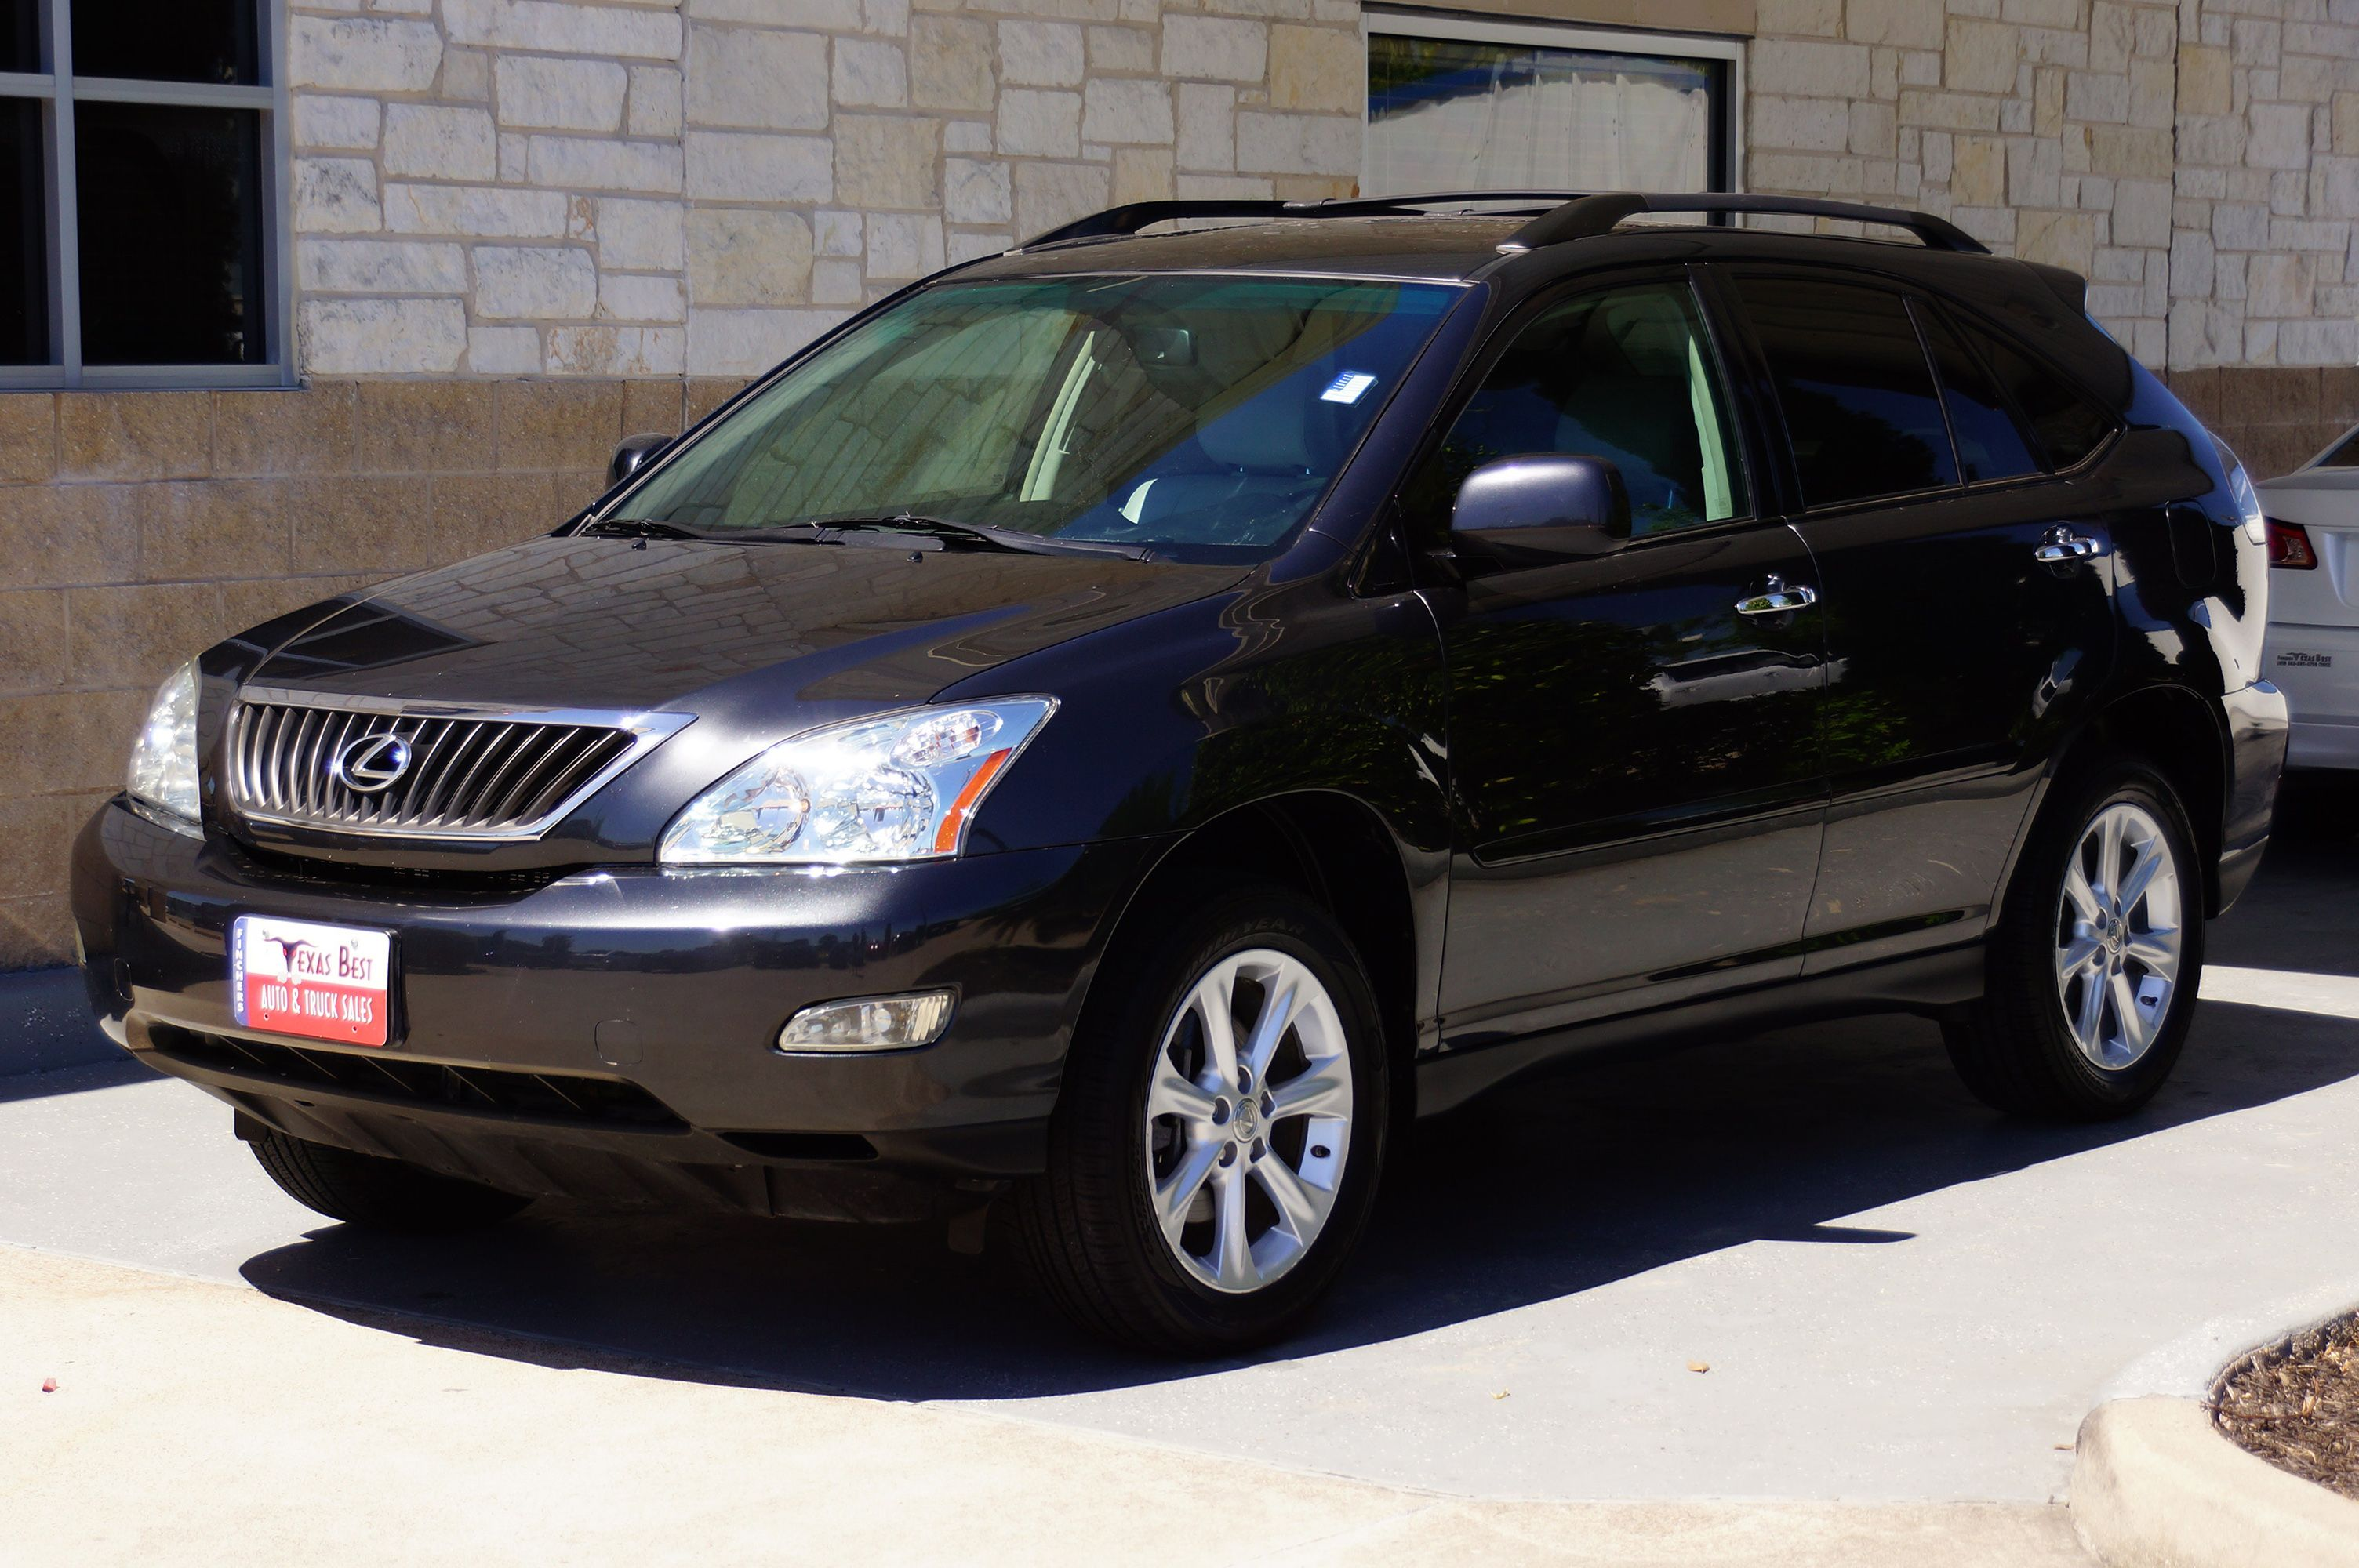 kreator wagon pre sports wiki tk team owned biby luxury lexus rx